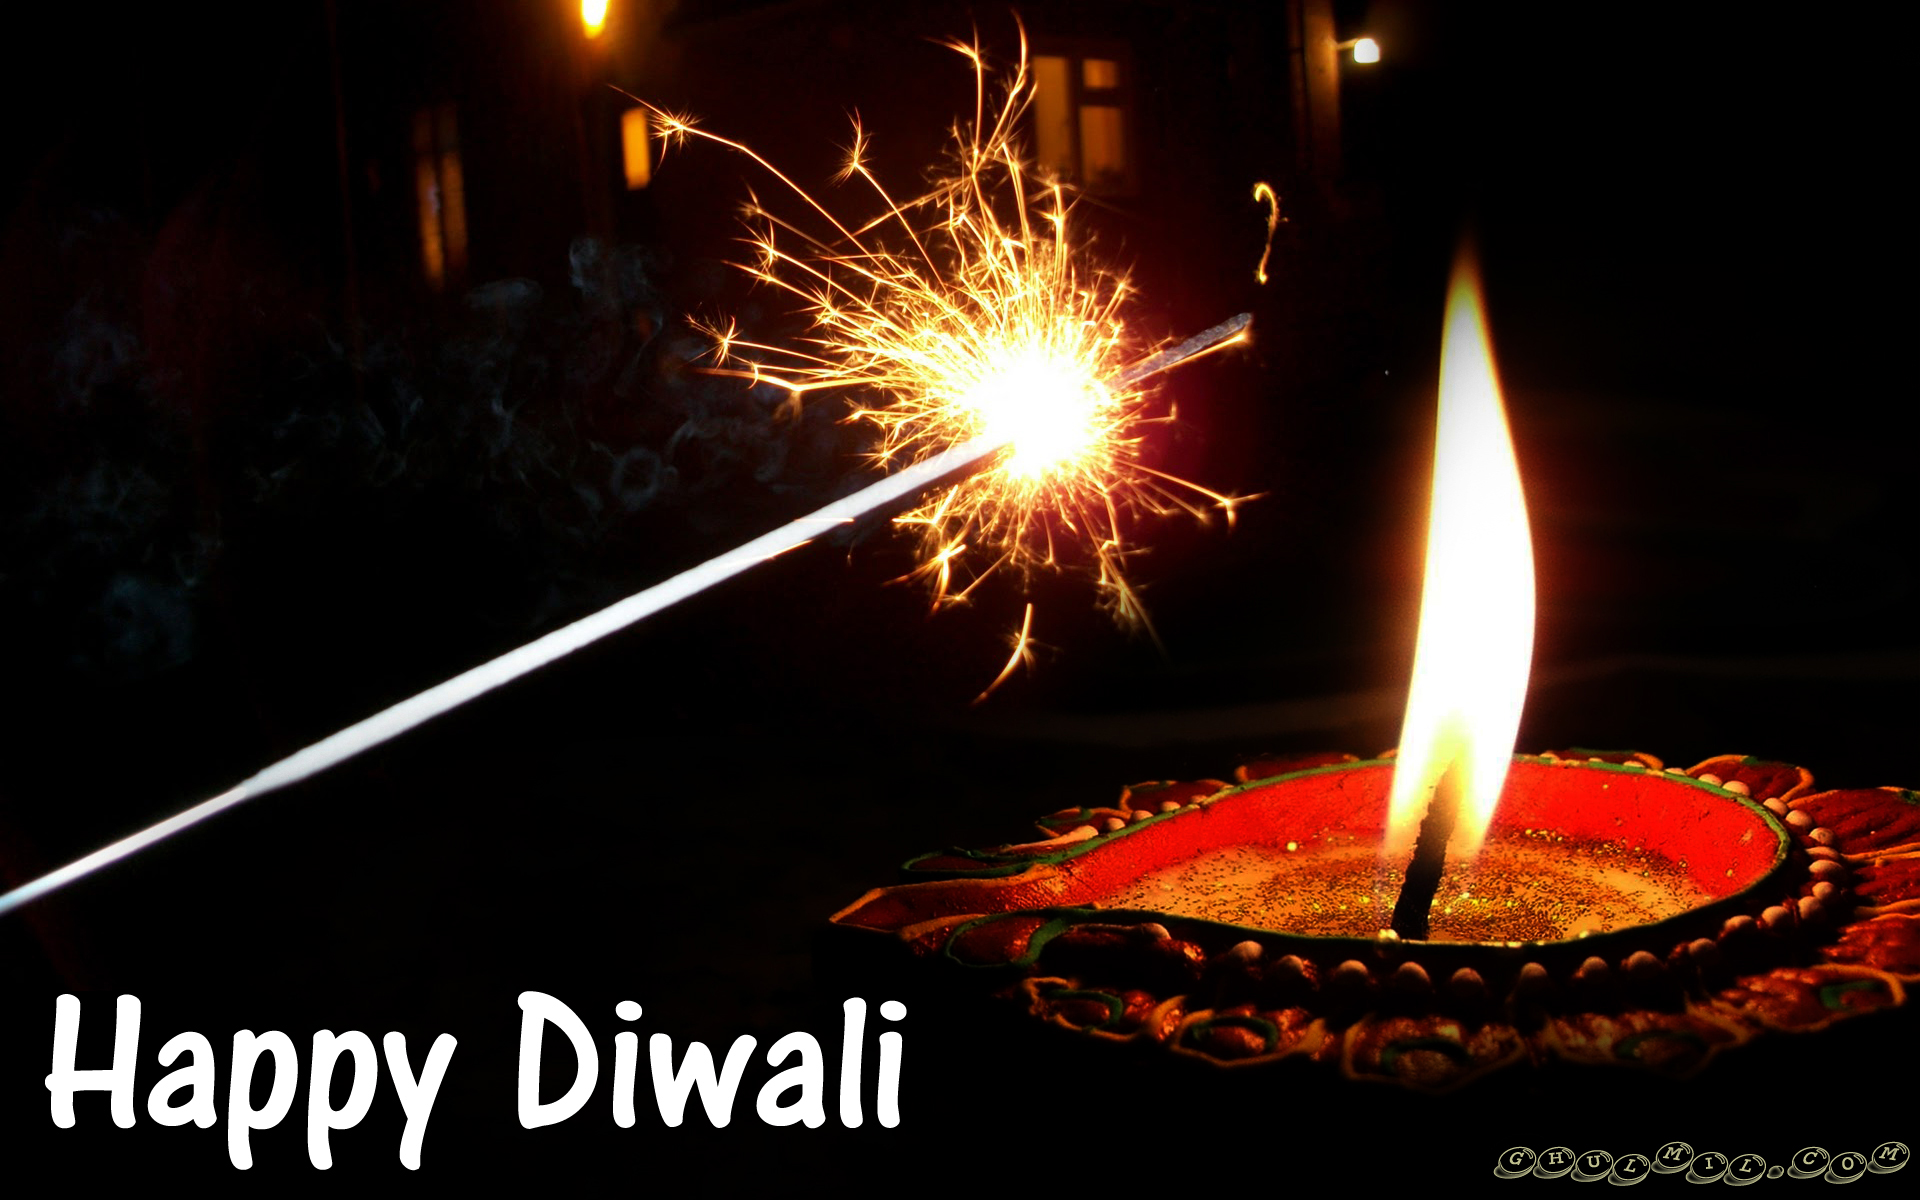 Deepavali Images And Wallpaper Download: Download Free Download Happy Diwali Wallpapers Gallery